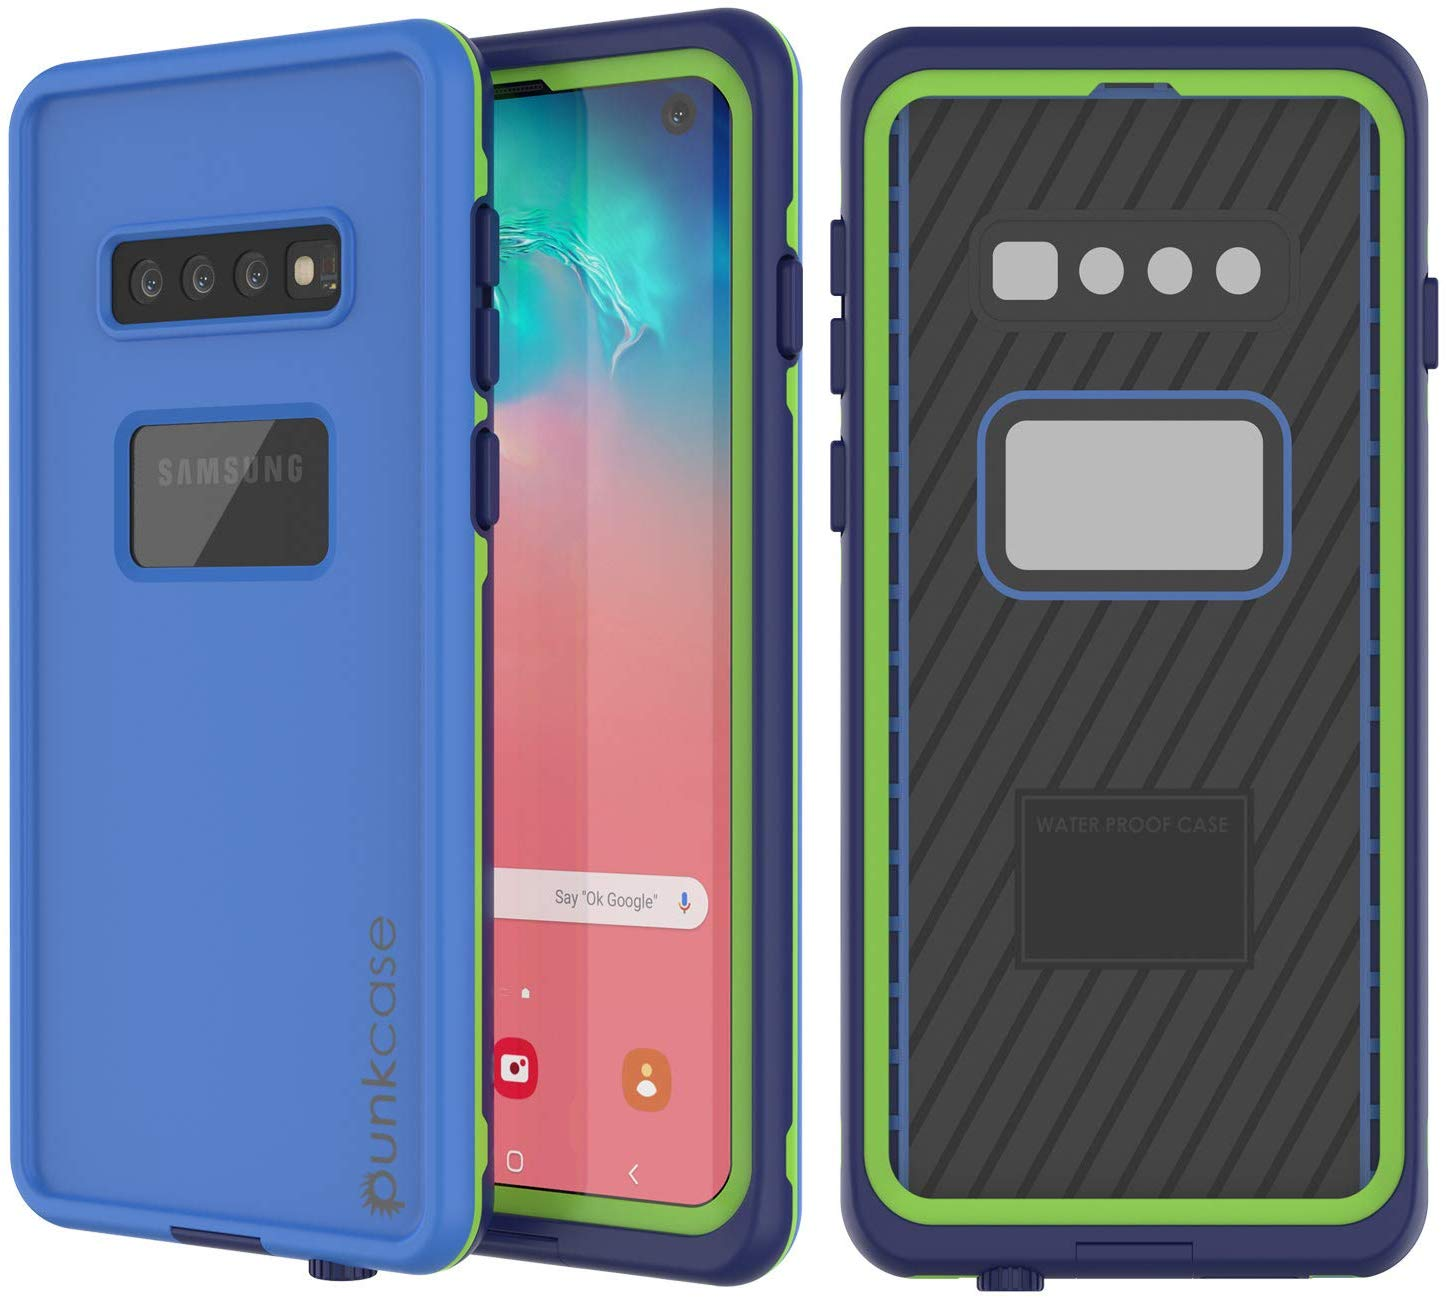 Punkcase S10 Waterproof Case [Aqua Series] Armor Cover [Blue]